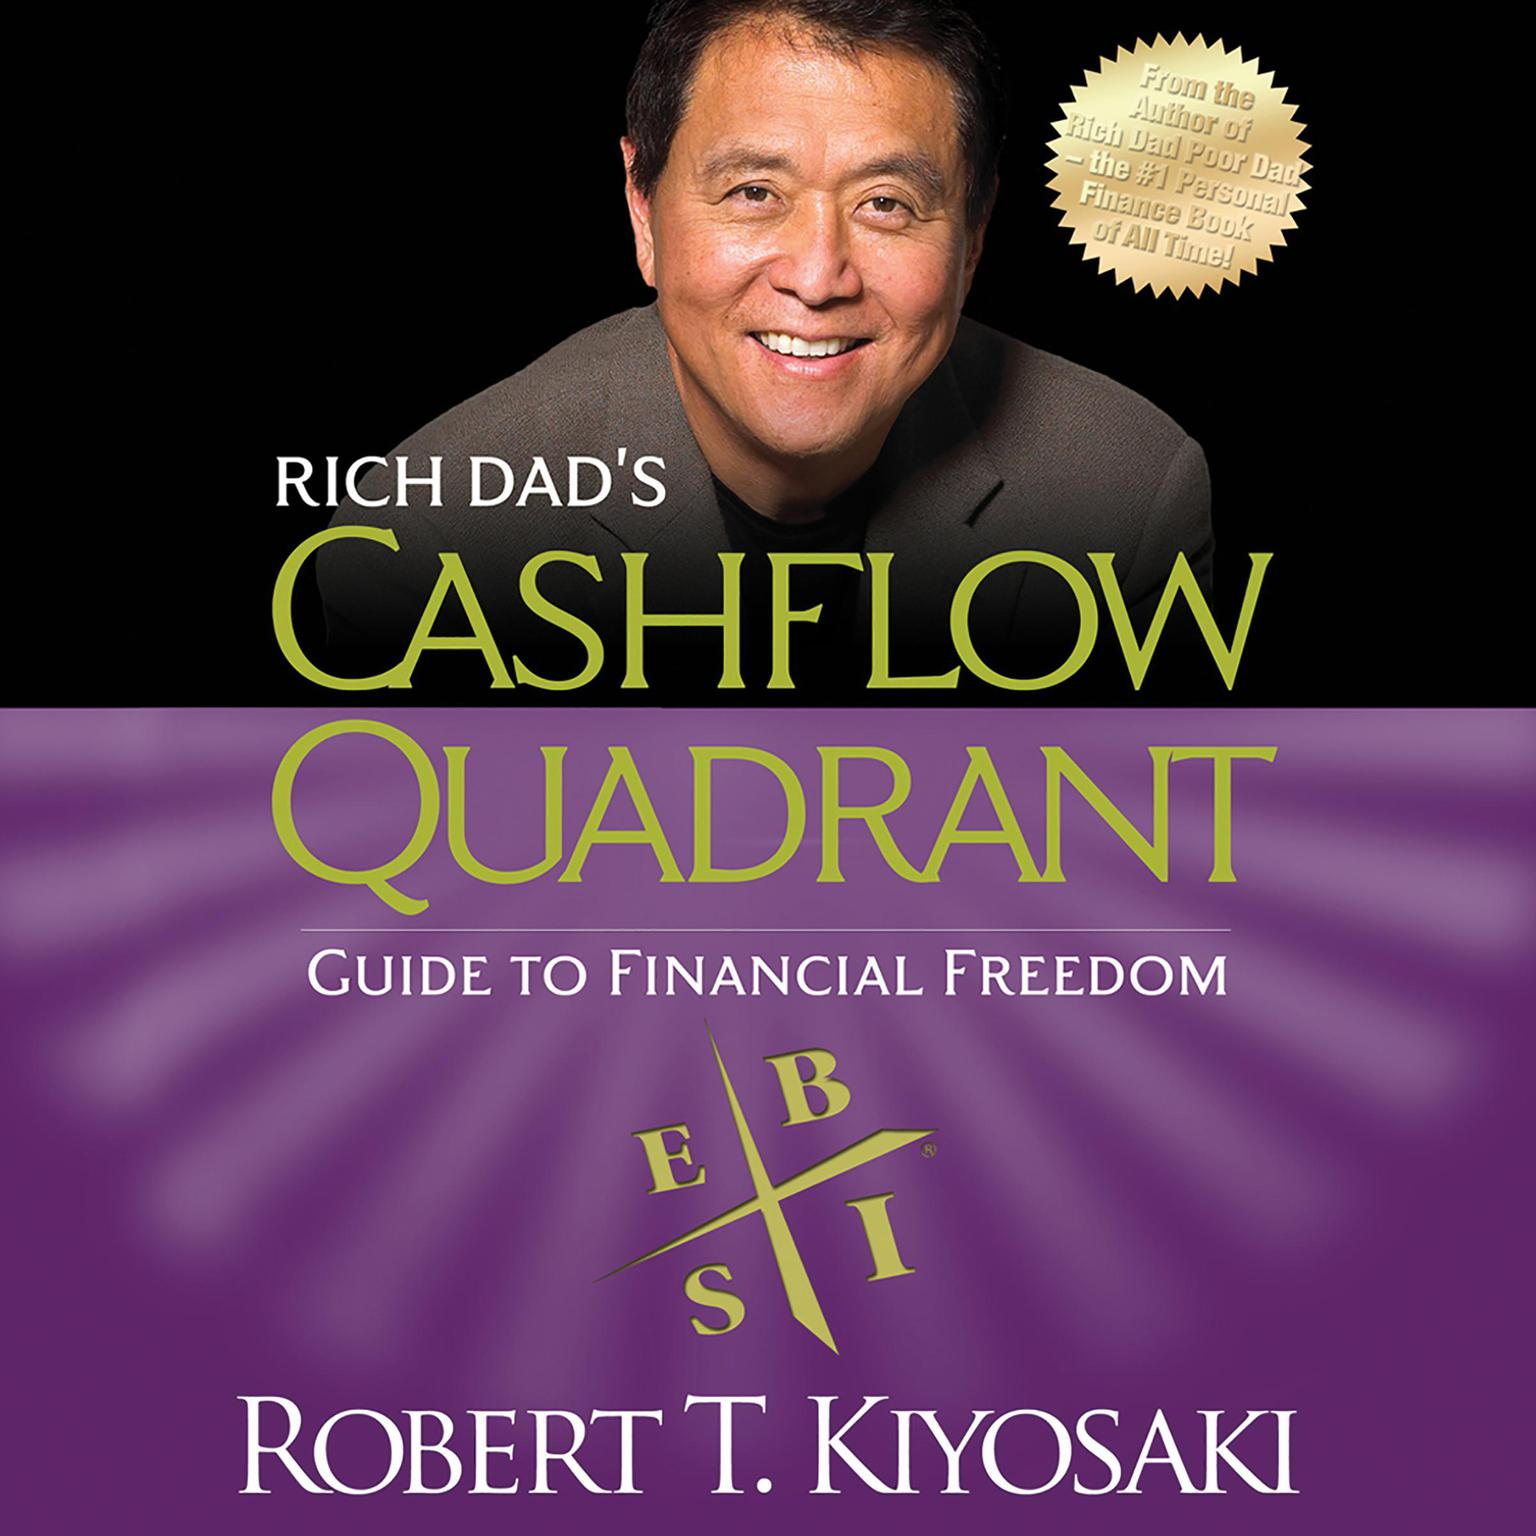 Printable Rich Dad's Cashflow Quadrant: Guide to Financial Freedom Audiobook Cover Art